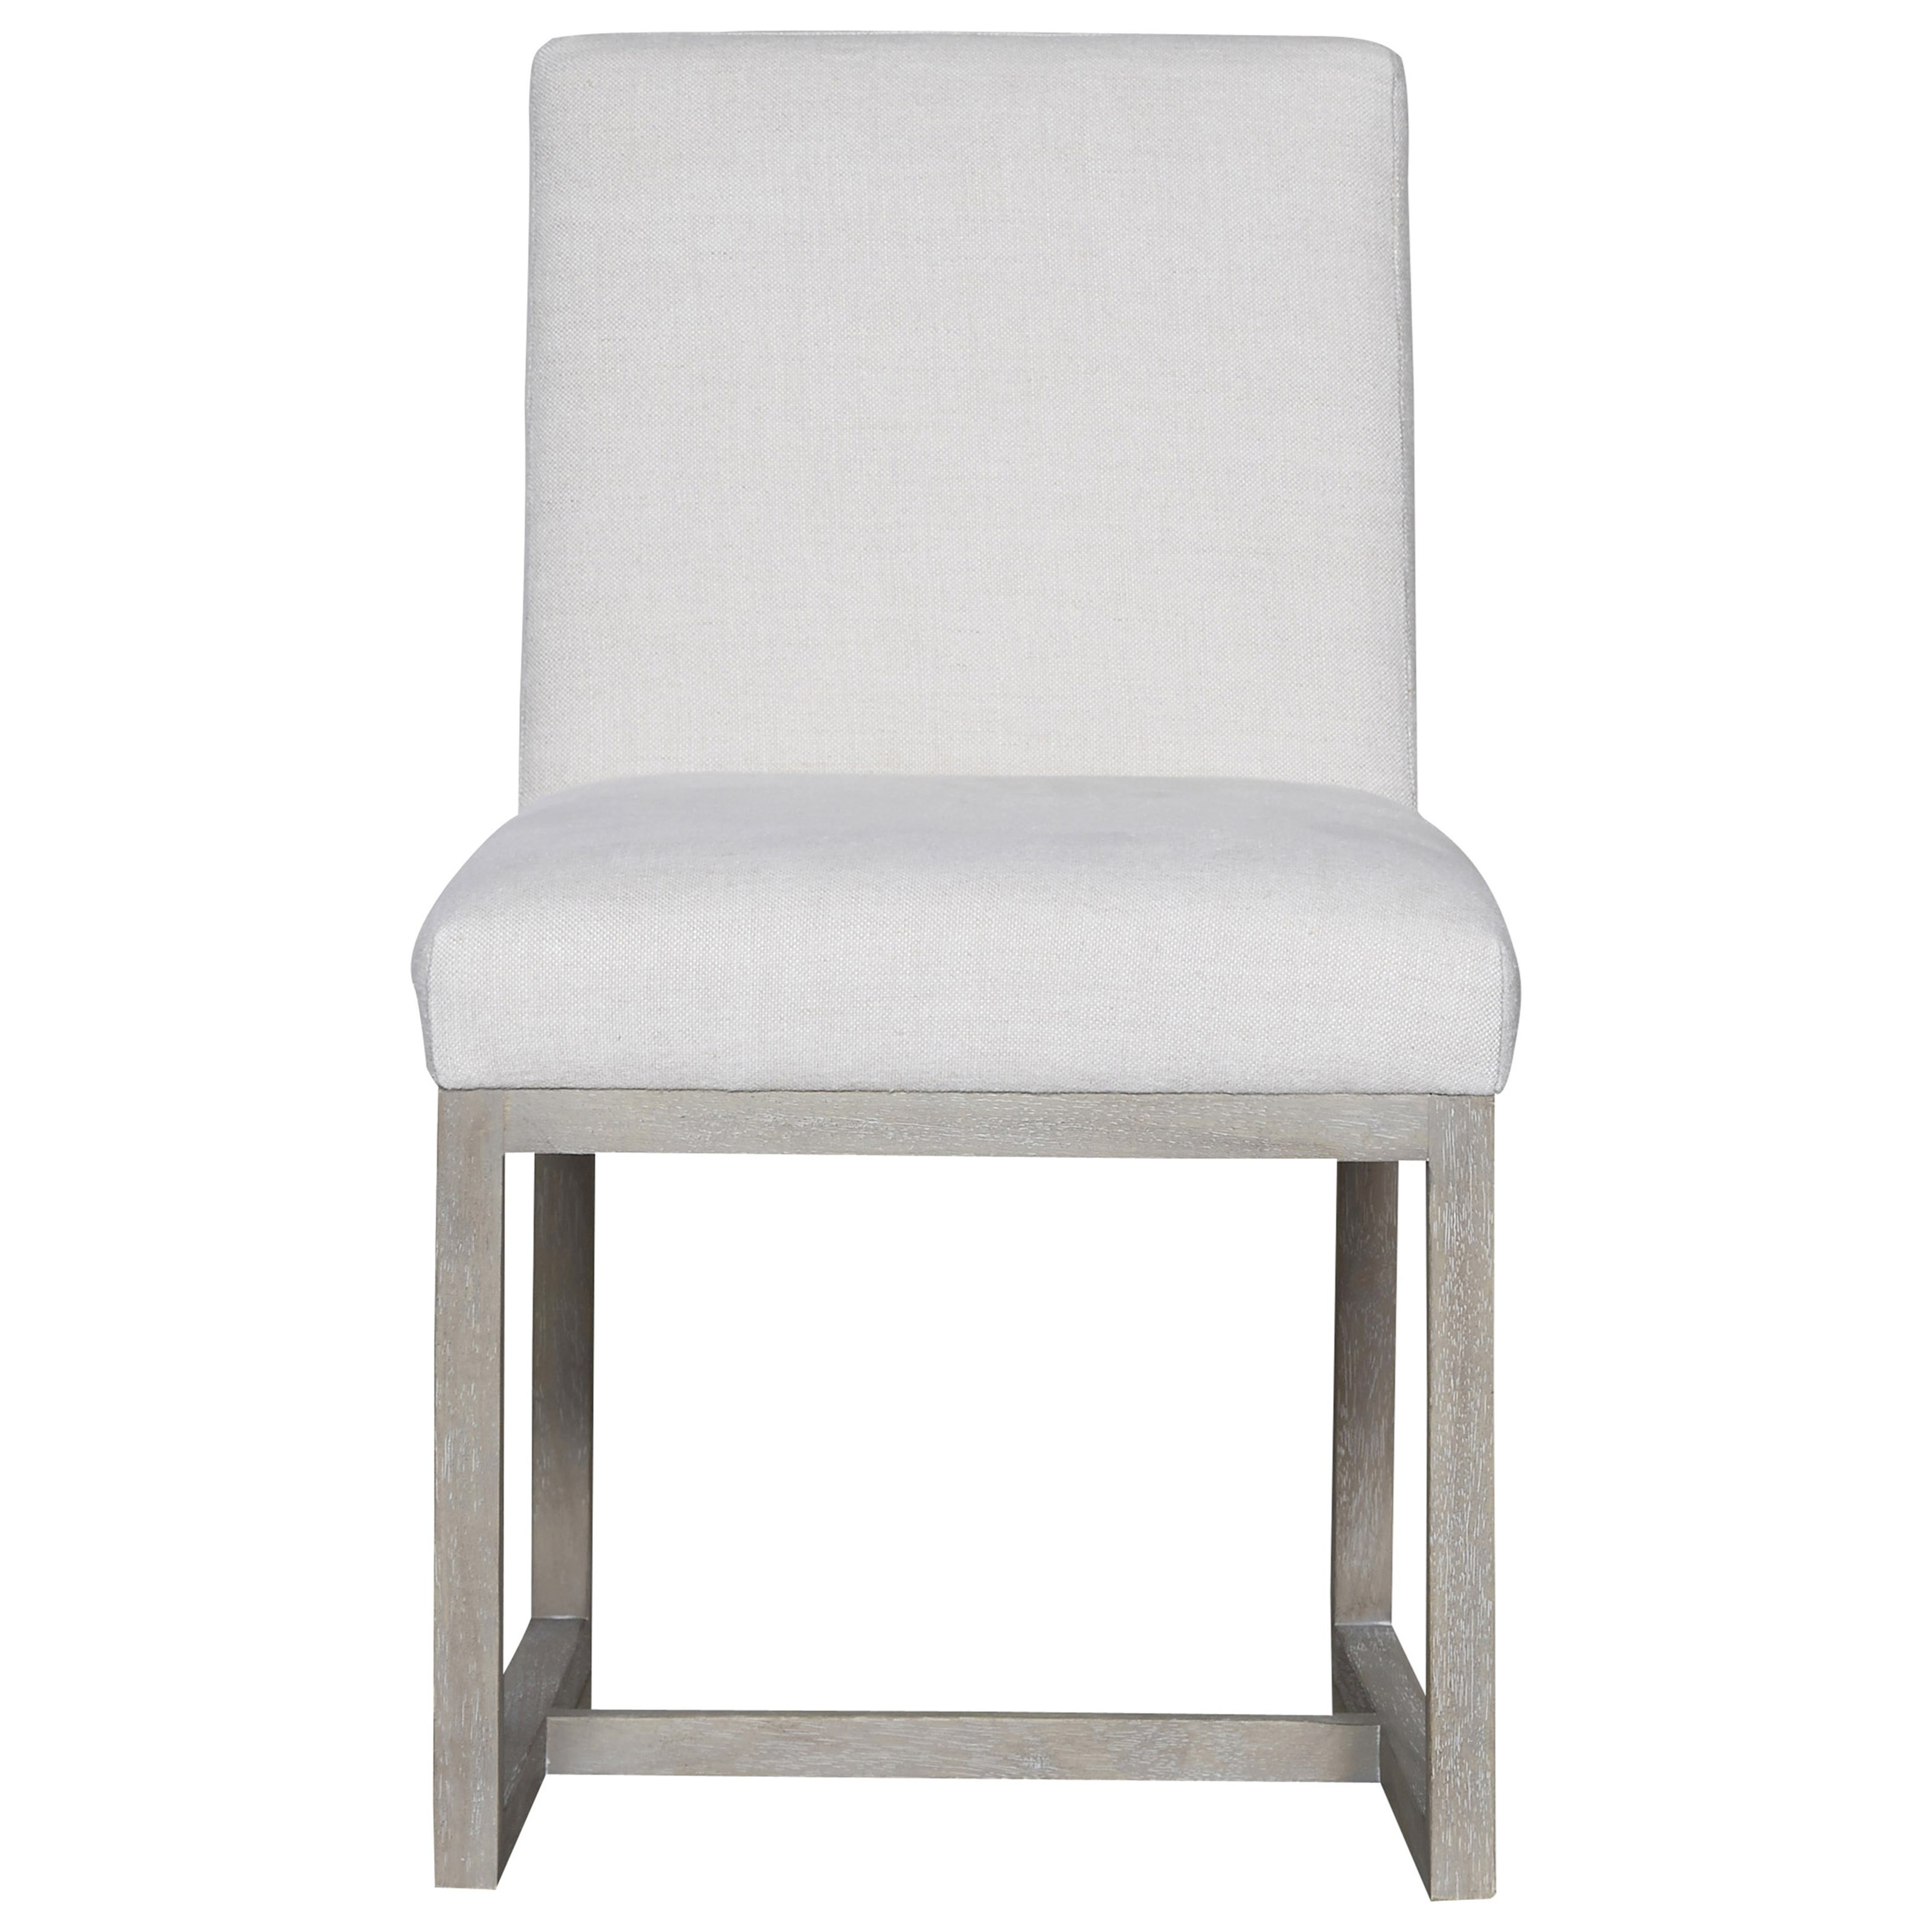 Universal modern upholstered carter side chair reeds for Modern upholstered dining chairs